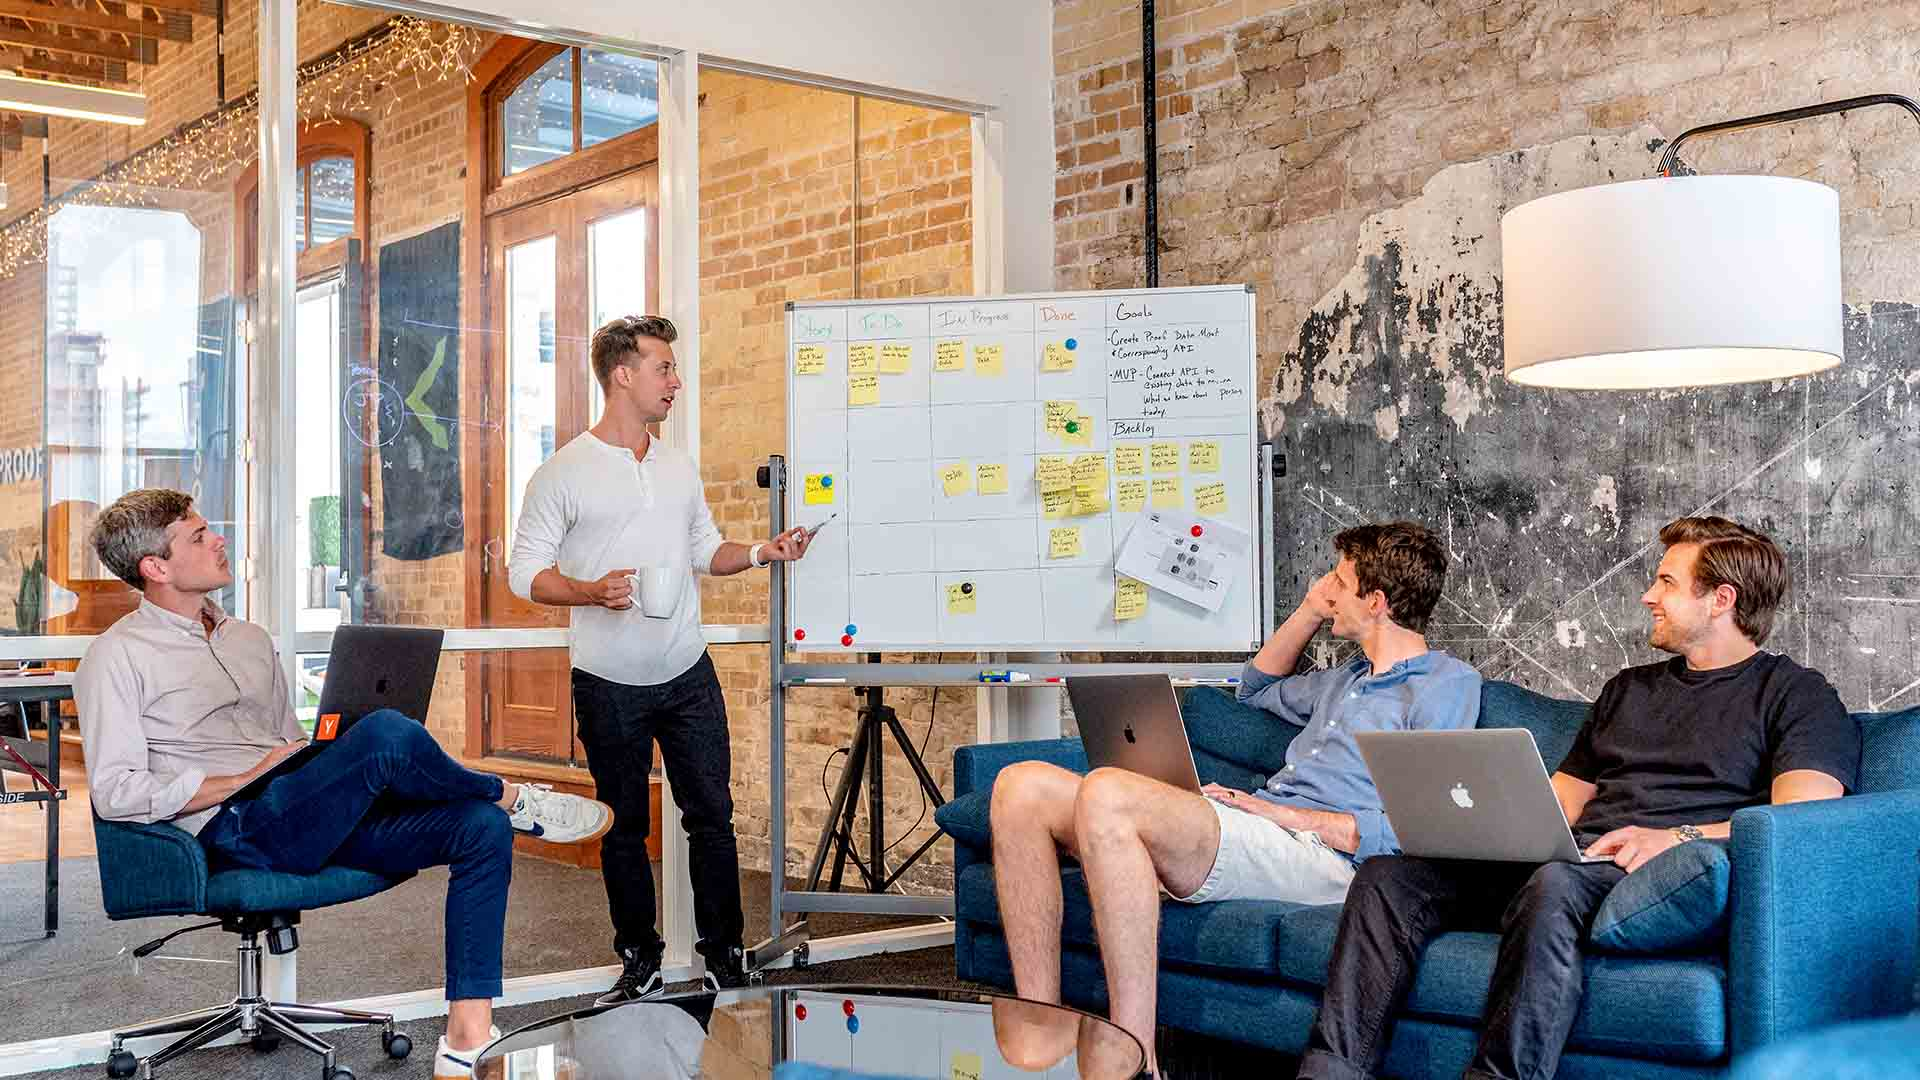 Top 10 Ways Startups Are Boosting Employee Productivity